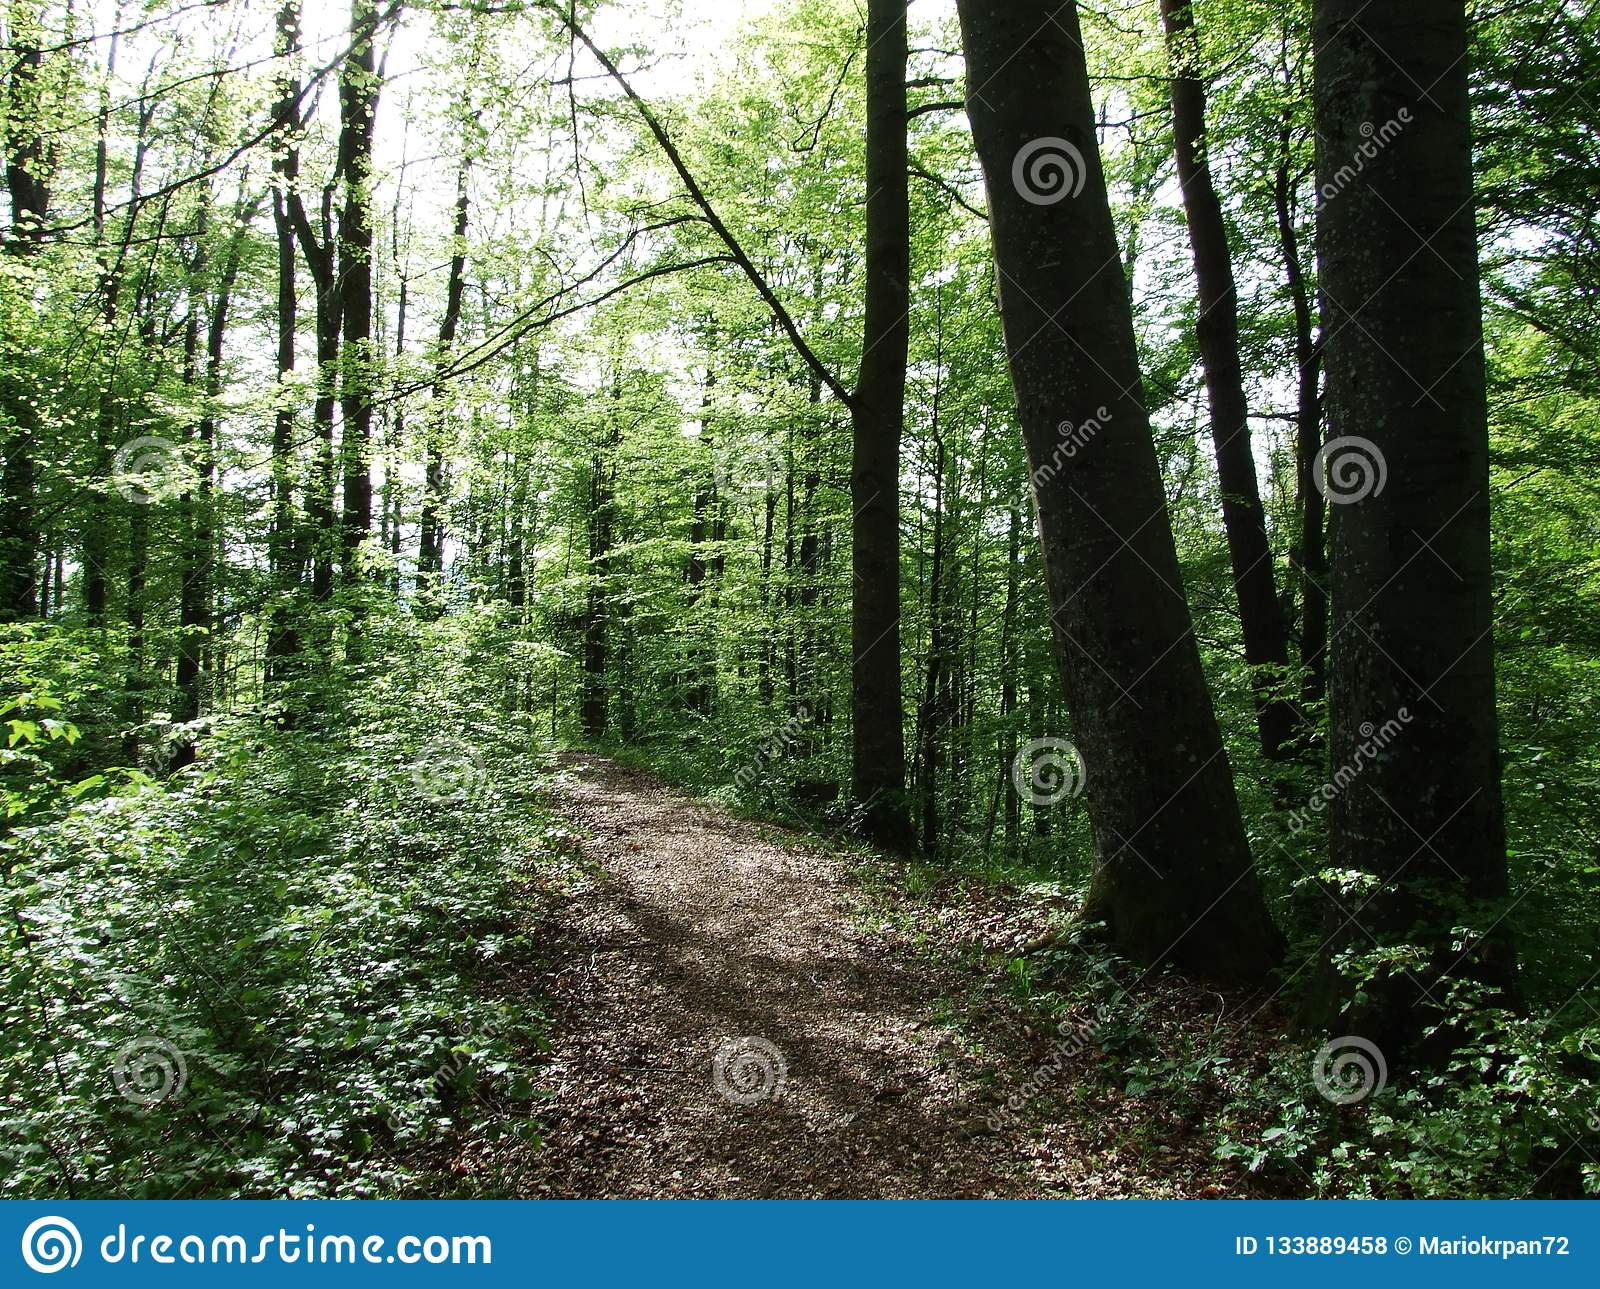 These forests are found in. Spring Deciduous Forest Near City Of Herisau Canton Appenzell Ausserrhoden Switzerland Stock Photo Image Of Appenzell City 133889458